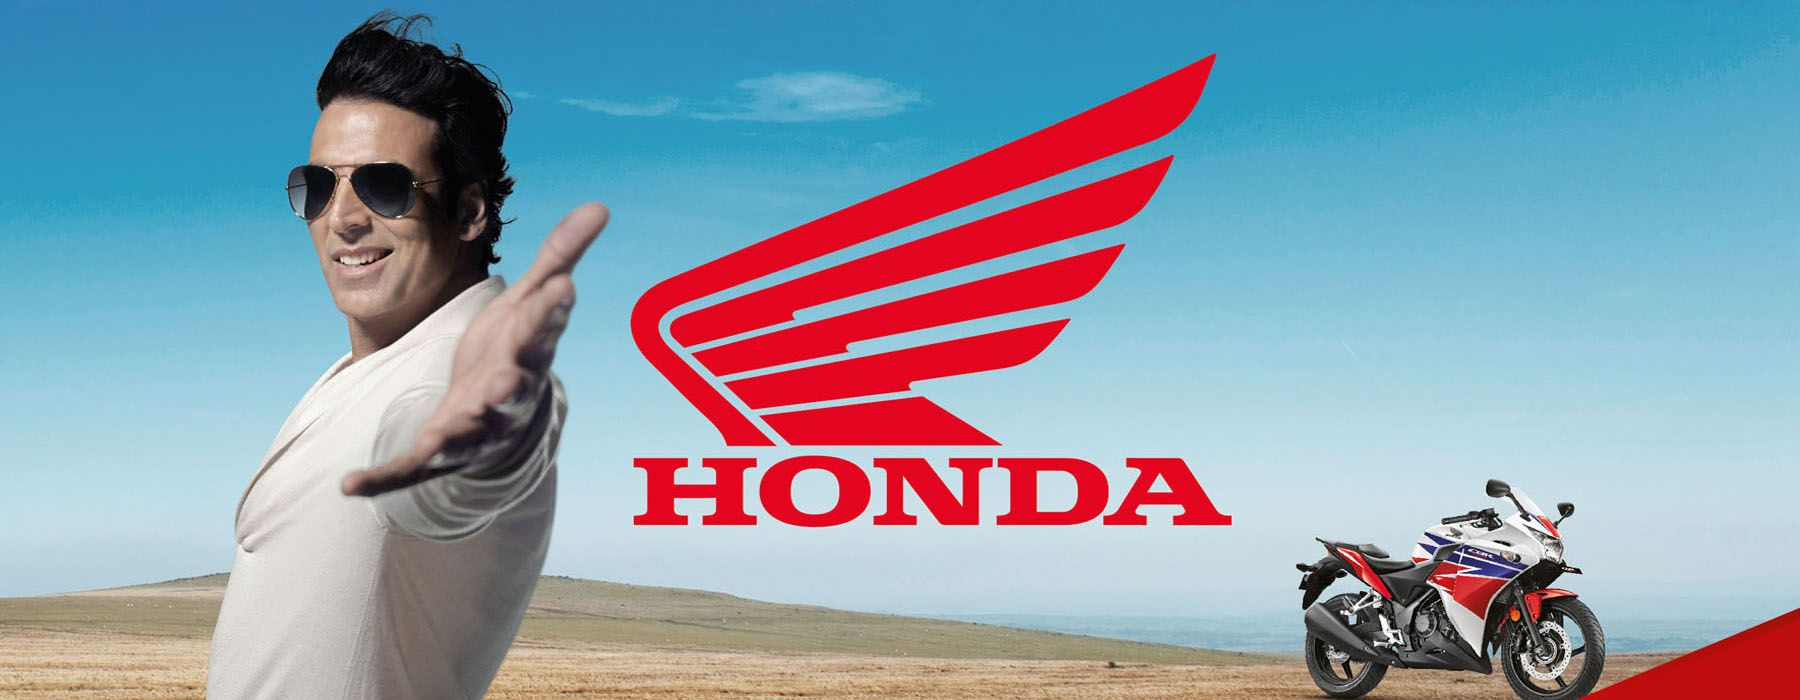 Honda Company Is The Largest Motorcycle Manufacturer In India It Product Of Two Wheeler And